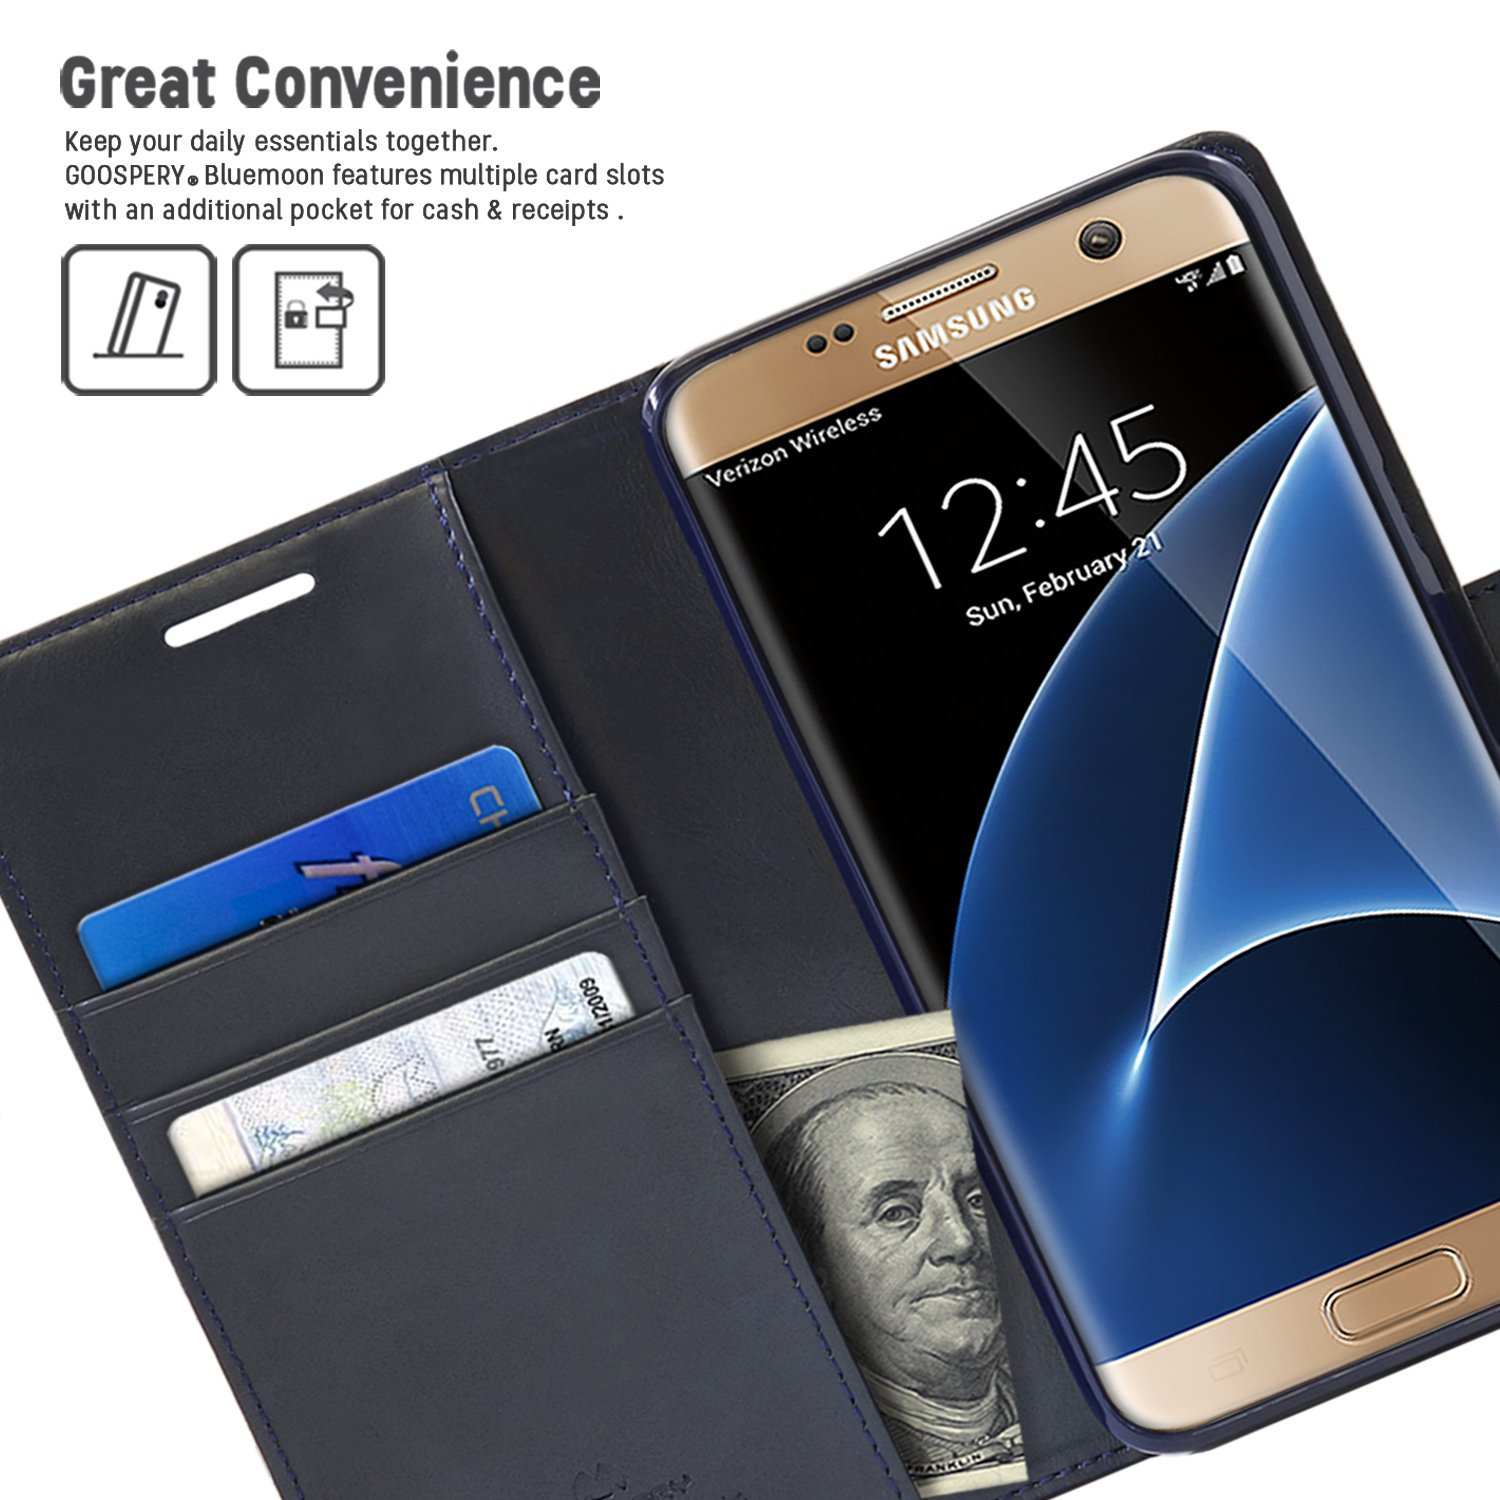 Goospery Galaxy S7 Case For Samsung Drop Note 3 Blue Moon Diary Protection Wallet Pu Leather With Shock Absorbing Tpu Casing Id Card